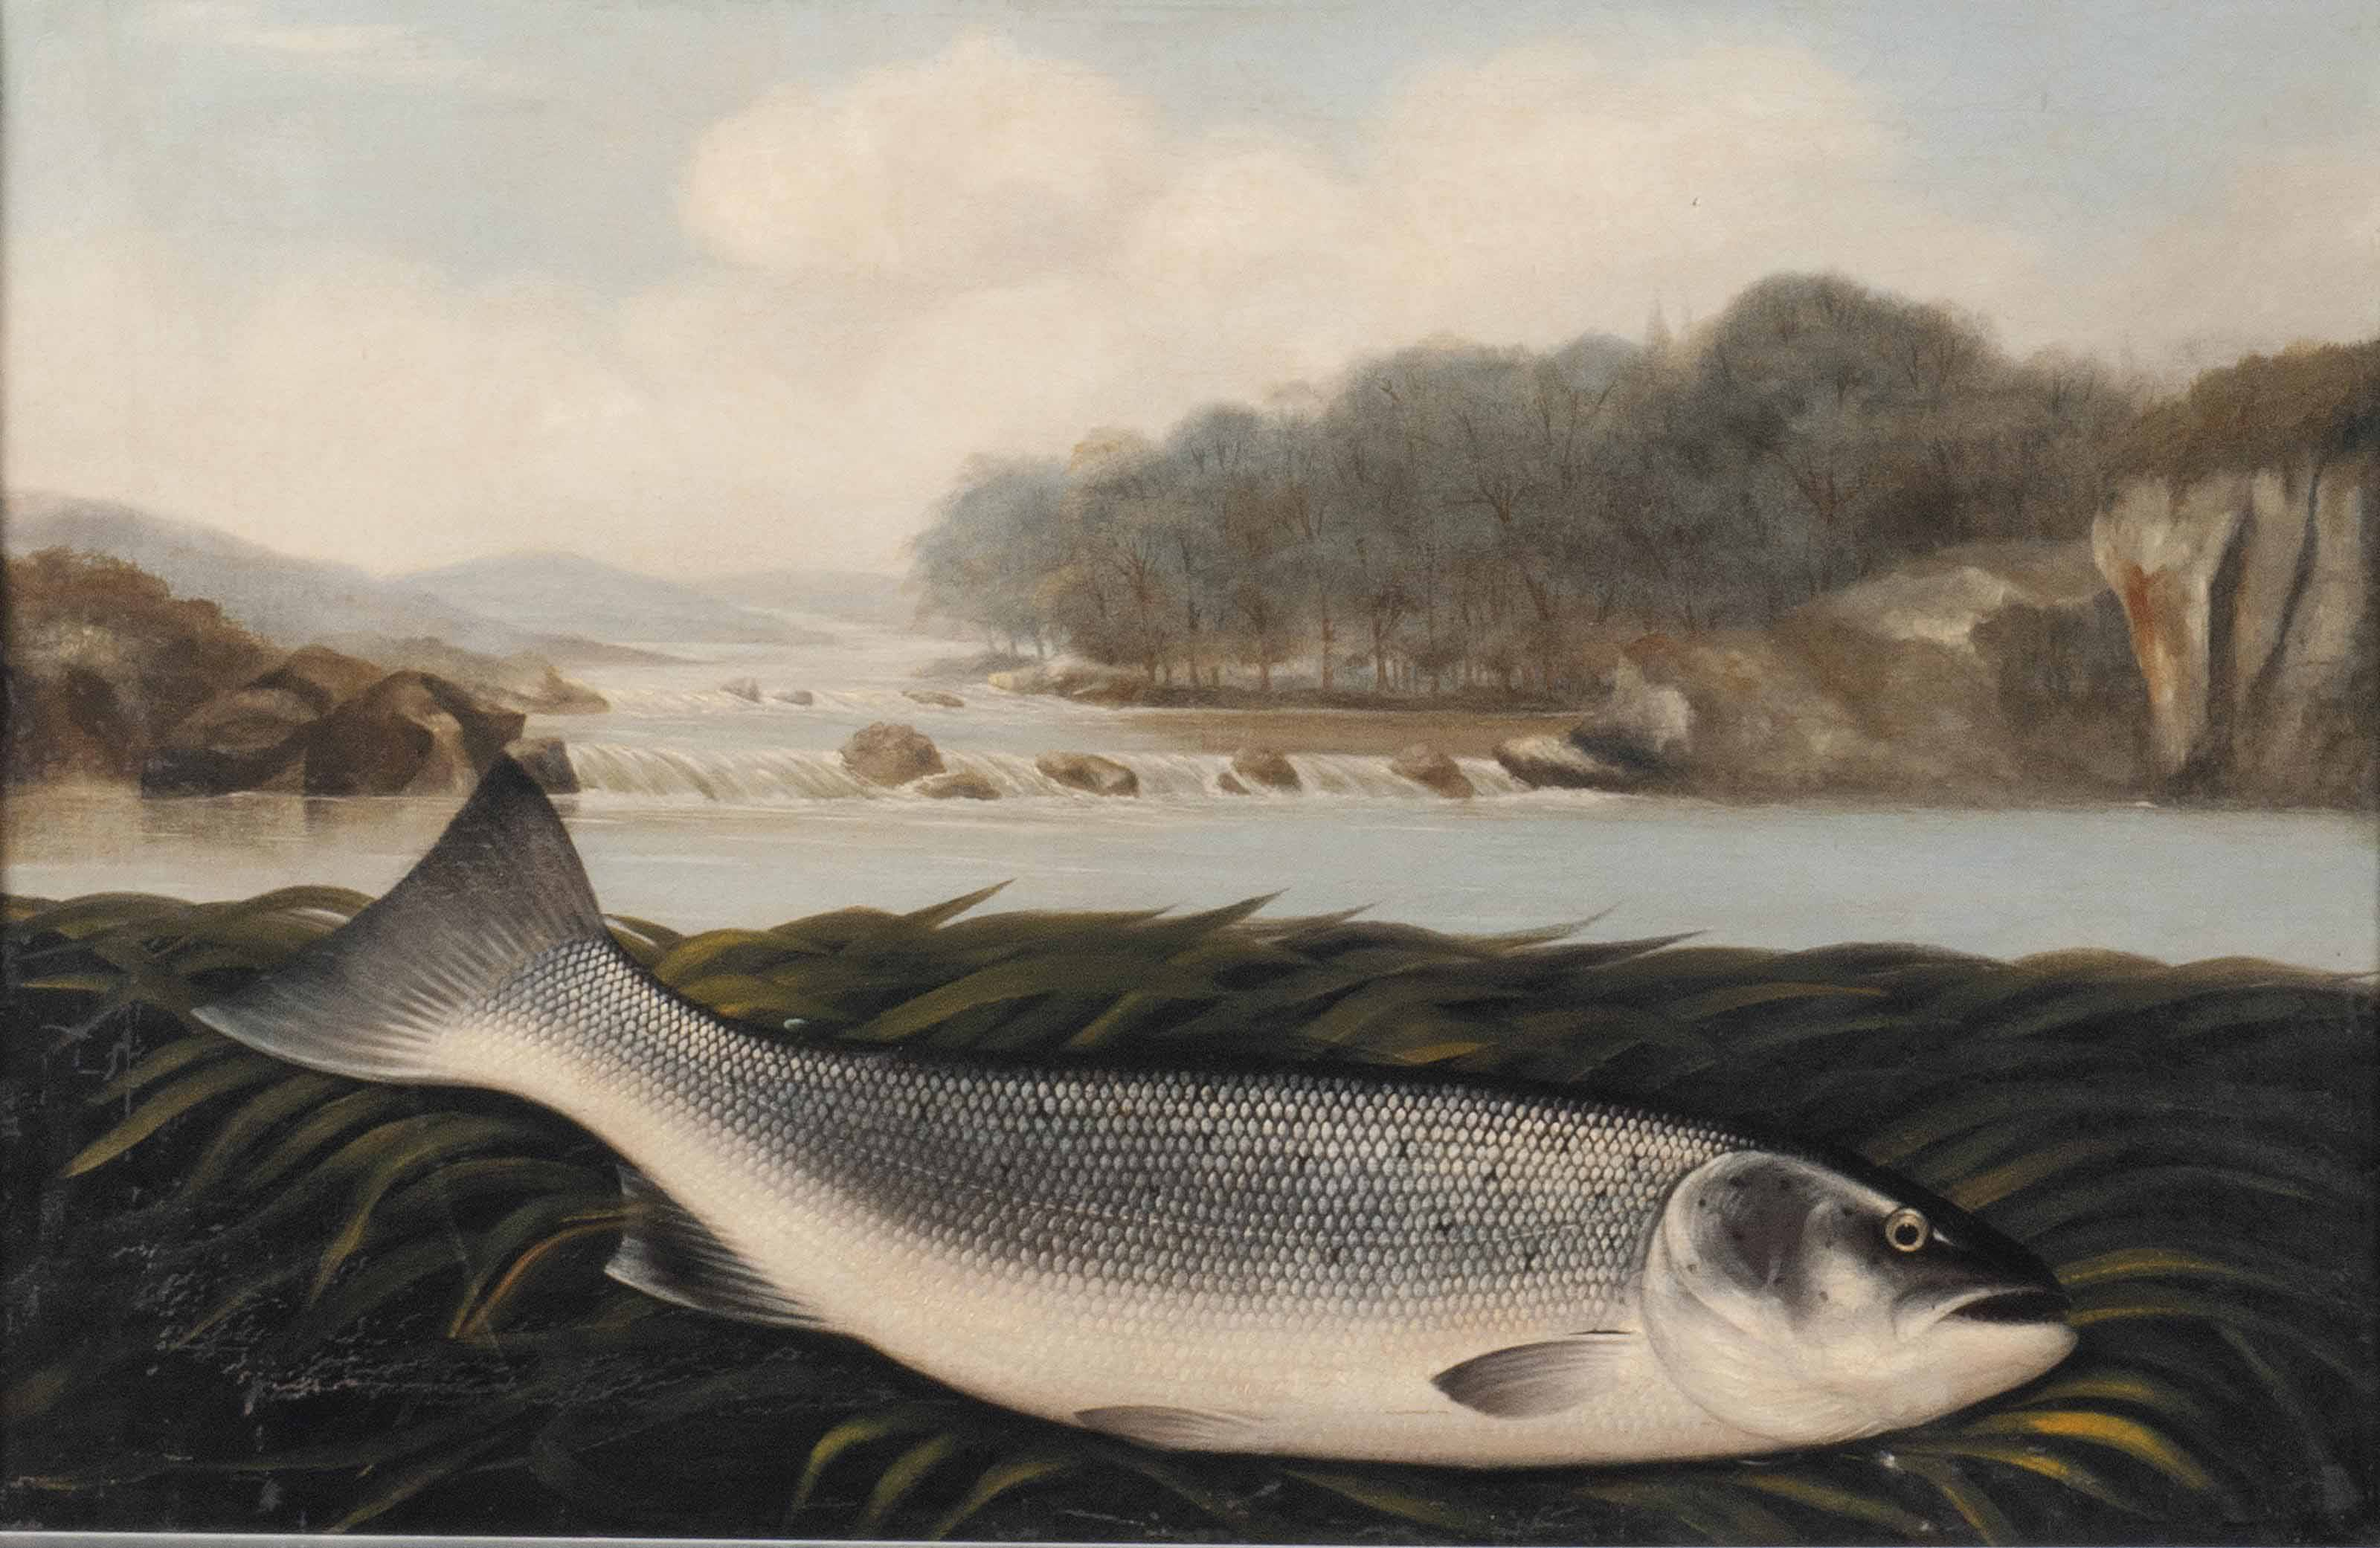 Study of a fish on a river near a wier